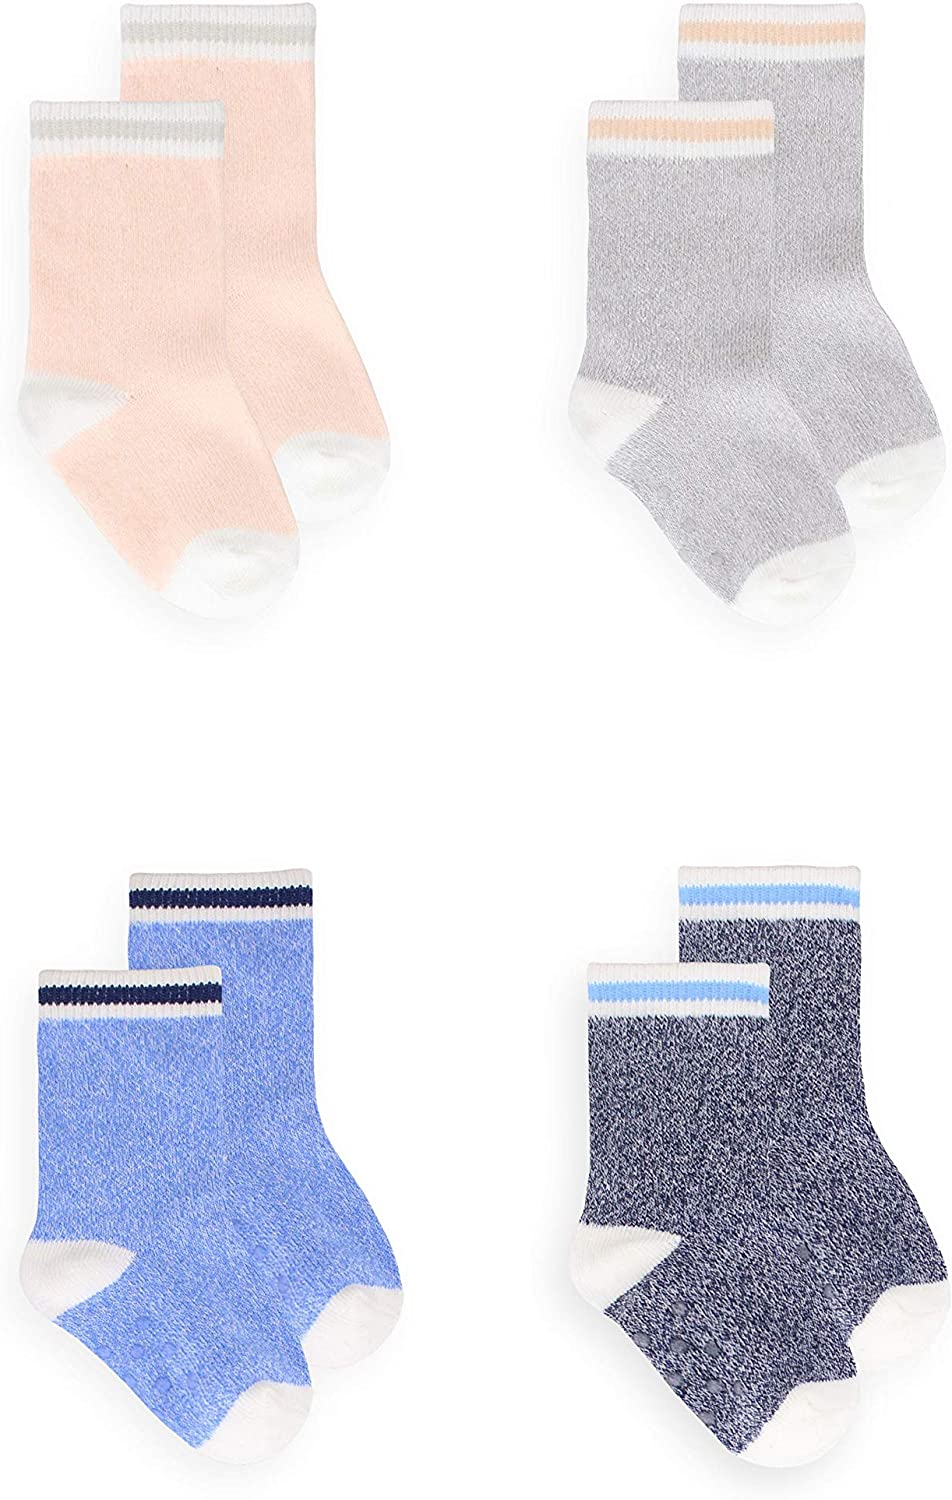 Soft Toddler Thermal Boot Sock Assorted 2 pack Cute Heather Small Children's Cotton Cuff Crew Grip Socks